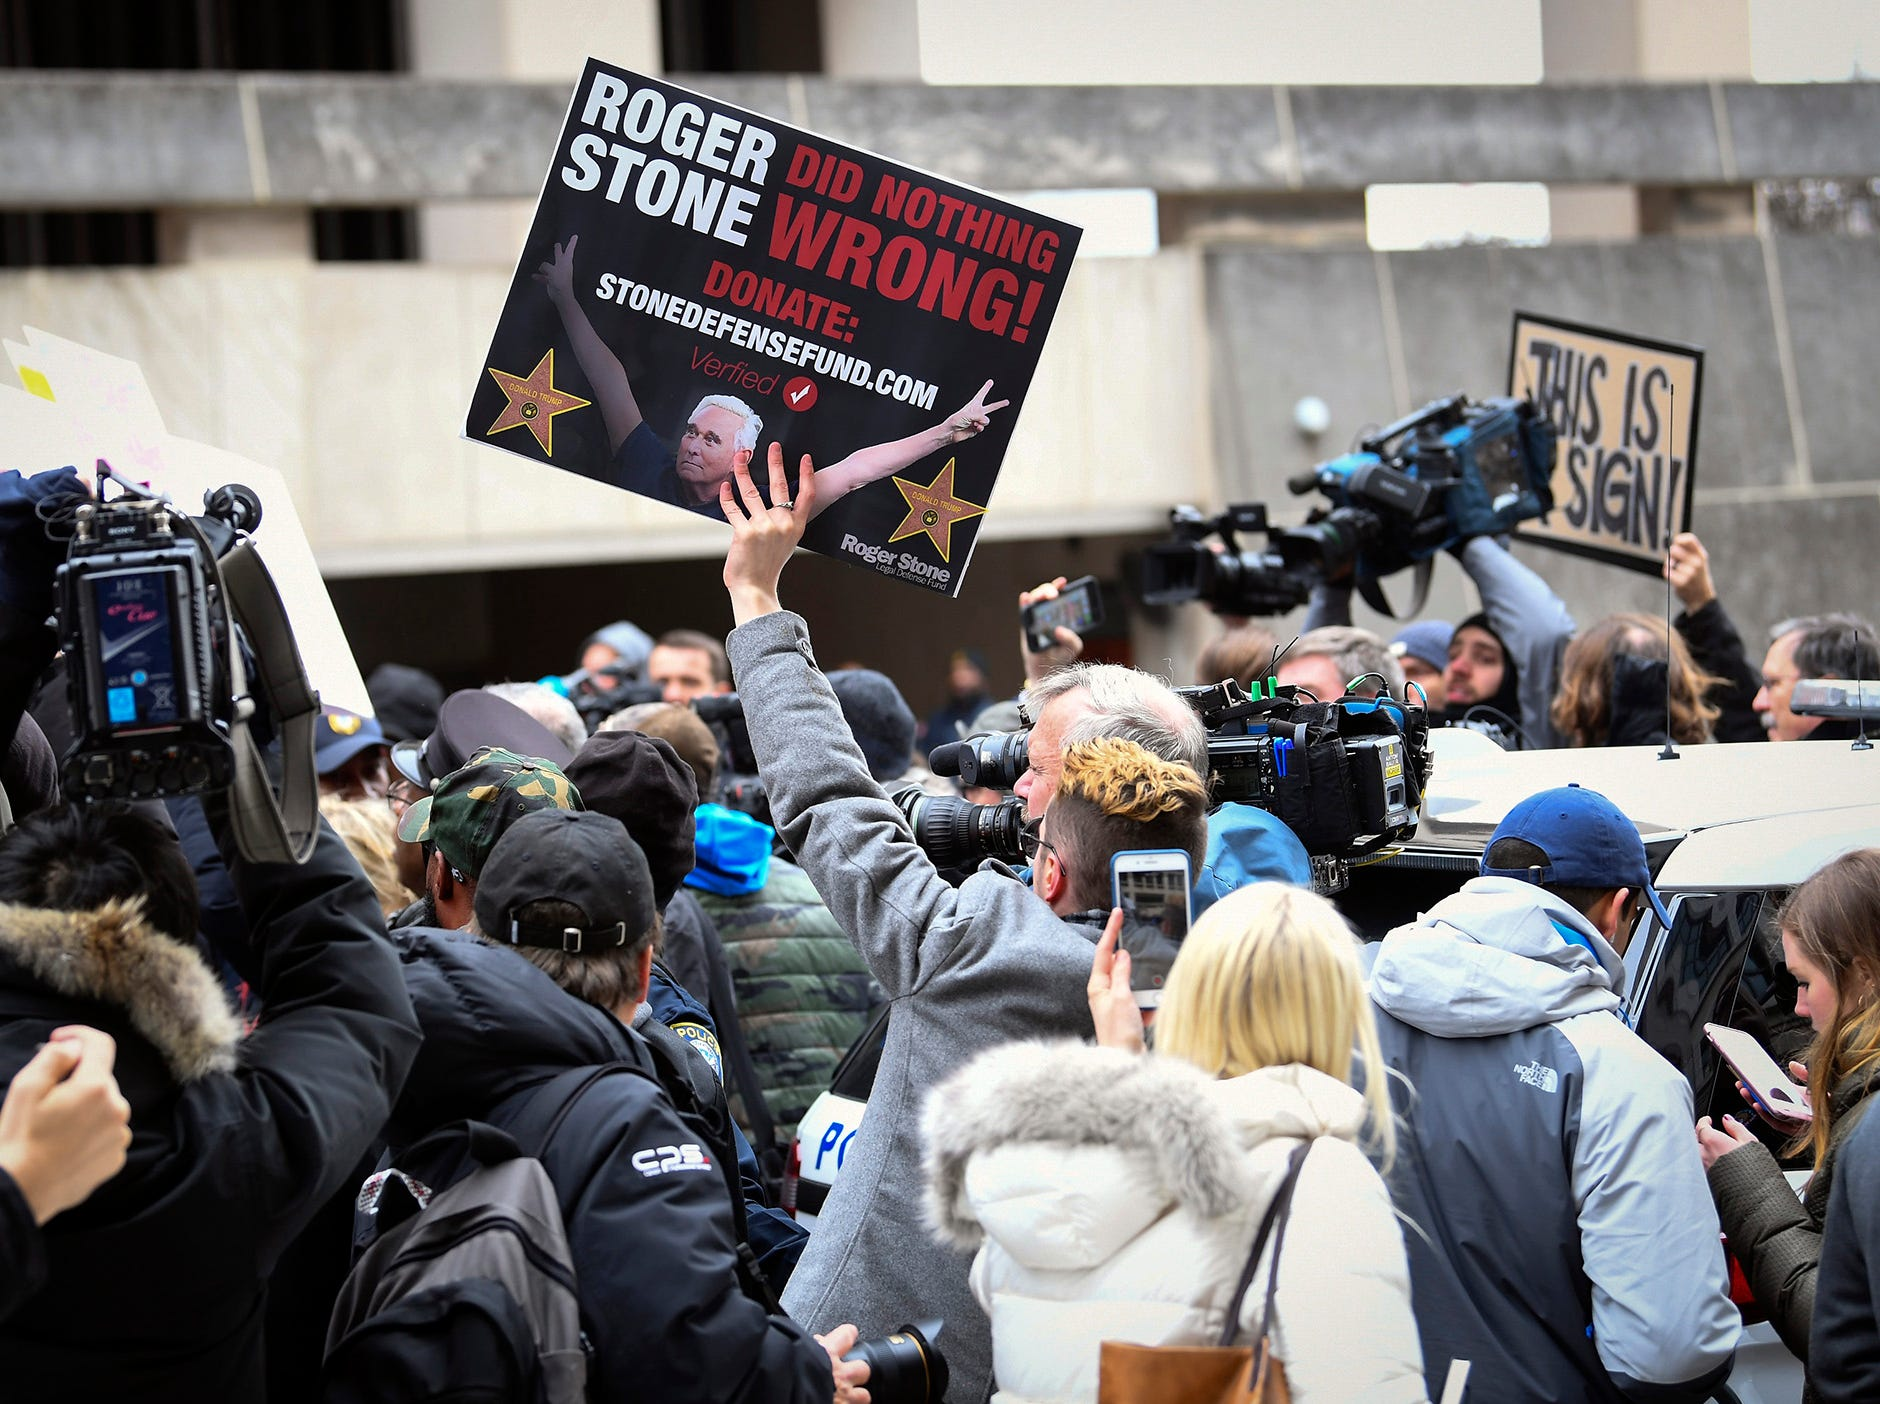 Protesters with signs as Roger Stone, a former political operative for the Trump campaign, departed following a federal court hearing on Jan. 29, 2019 in Washington. Stone was indicted on one count of obstruction, five counts of making false statements to Congress and one count of witness tampering.